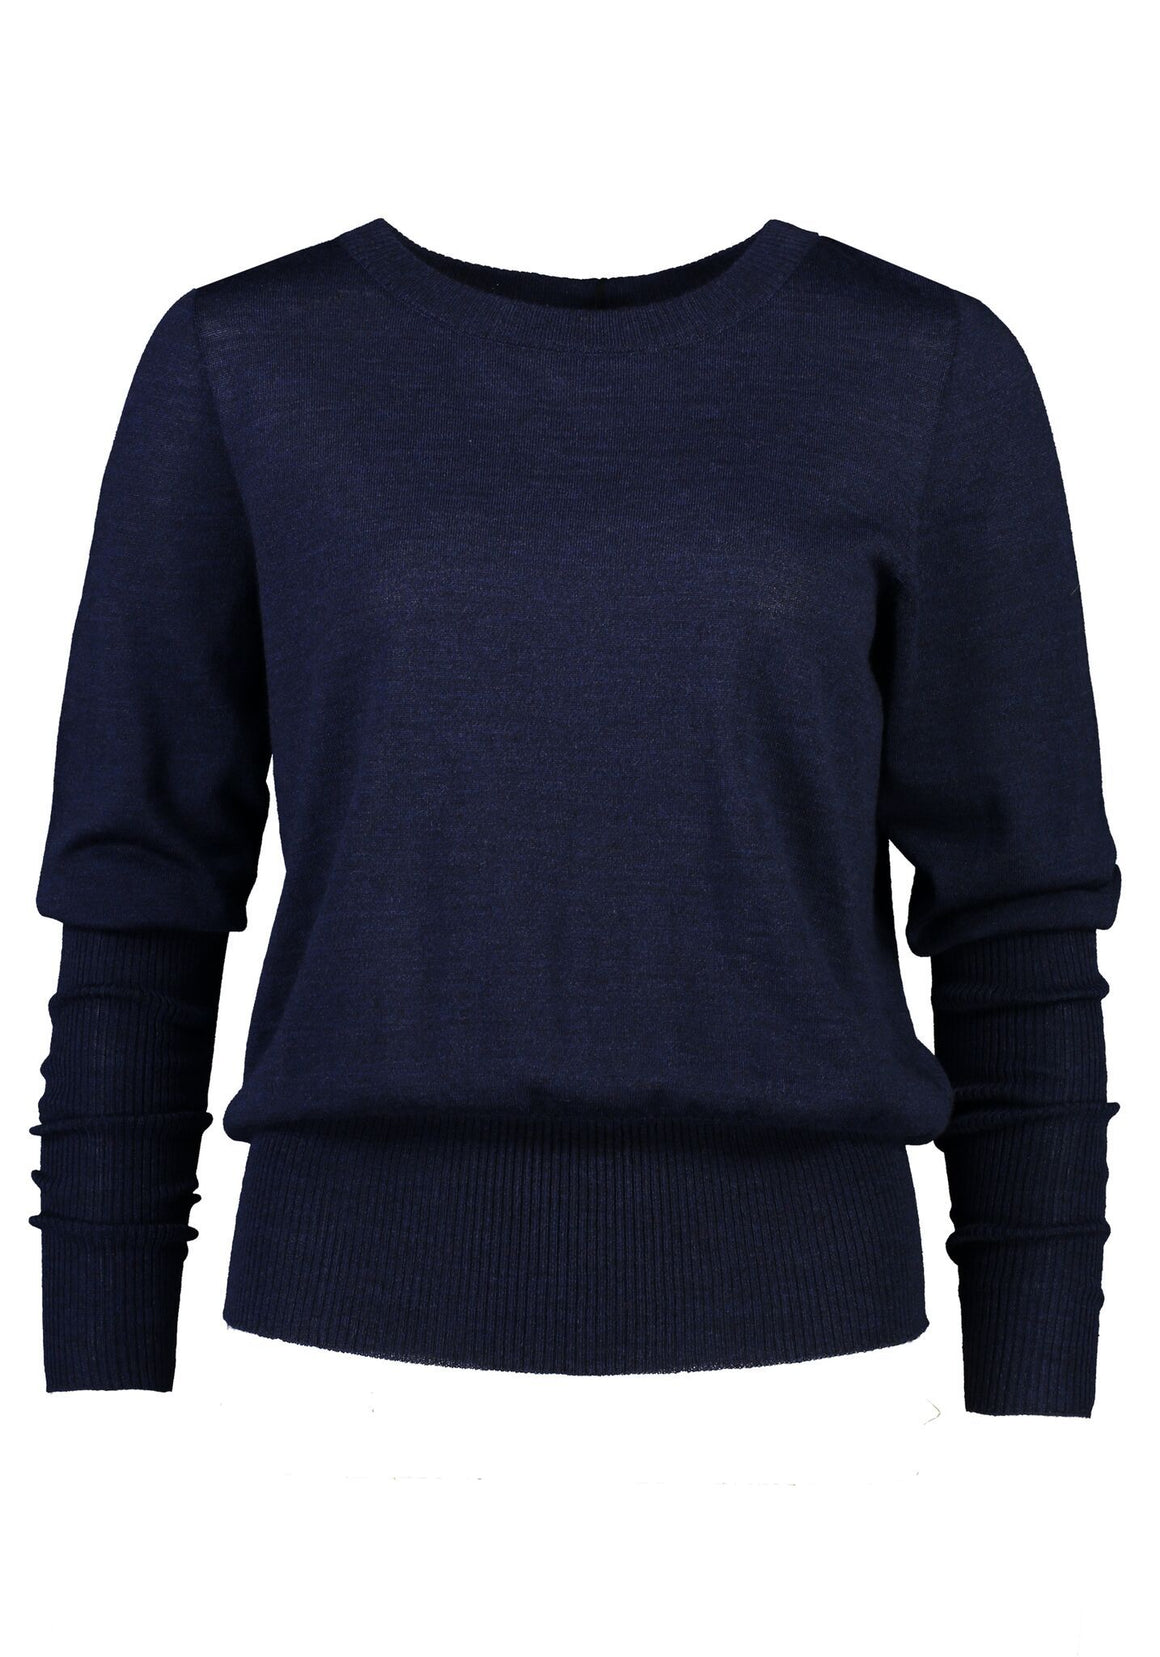 Standard Issue Long Rib Sweater | Shop Online at Wallace & Gibbs NZ